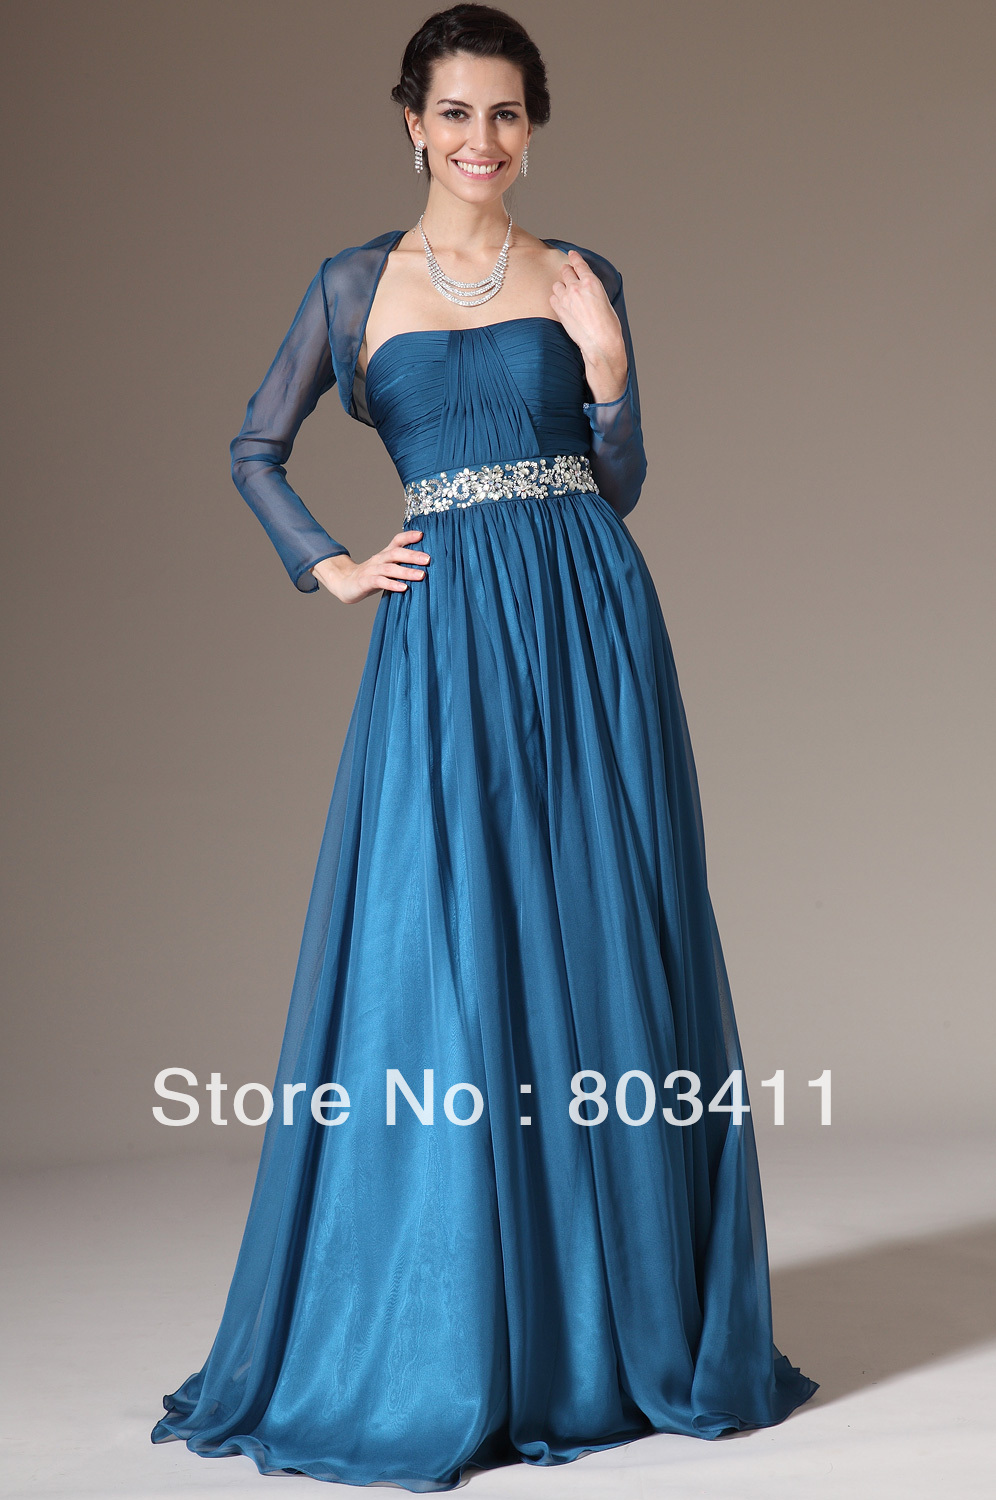 New Two Pieces A Line Evening Gown Bolero Dress Mother Of The Bride ...